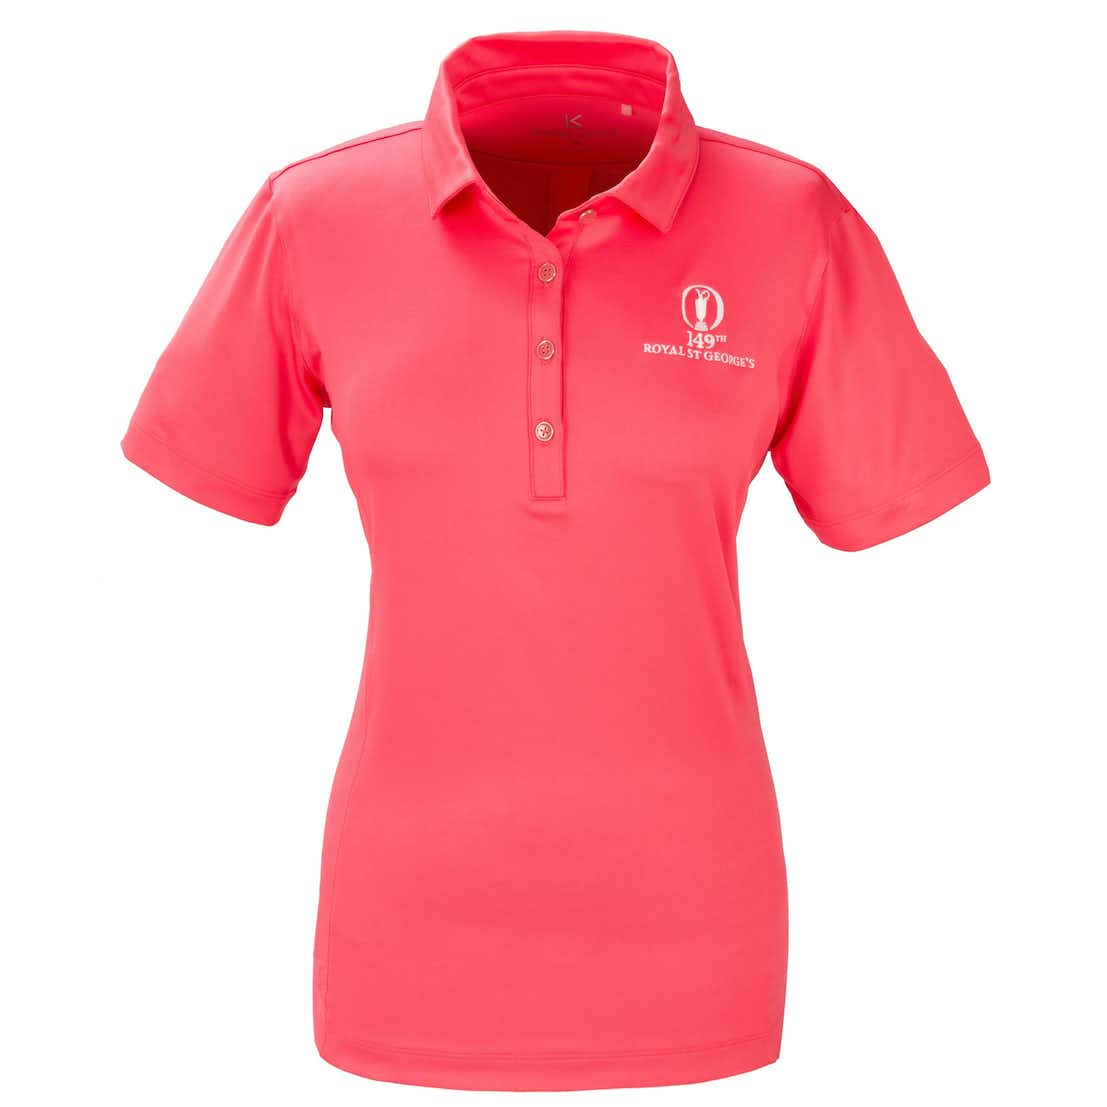 149th Royal St George's Kate Lord Plain Polo - Pink